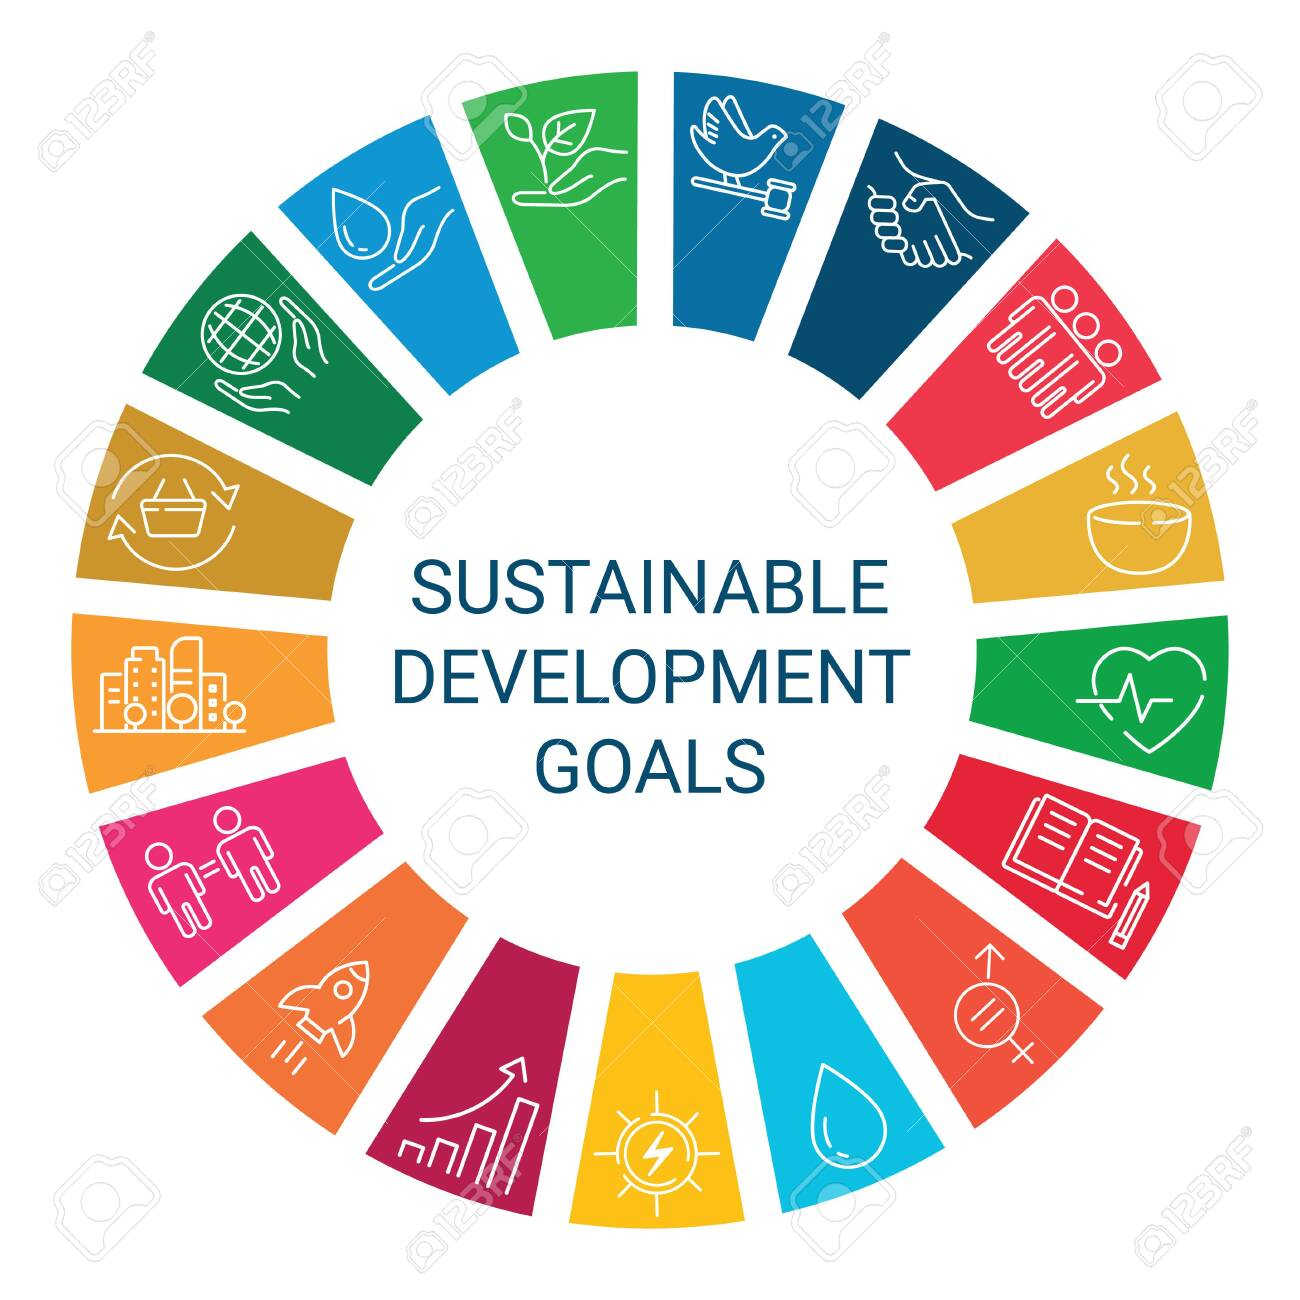 Icons set global business, economics and marketing. Linear style icons. Sustainable Development Goals. Isolated - 134948625